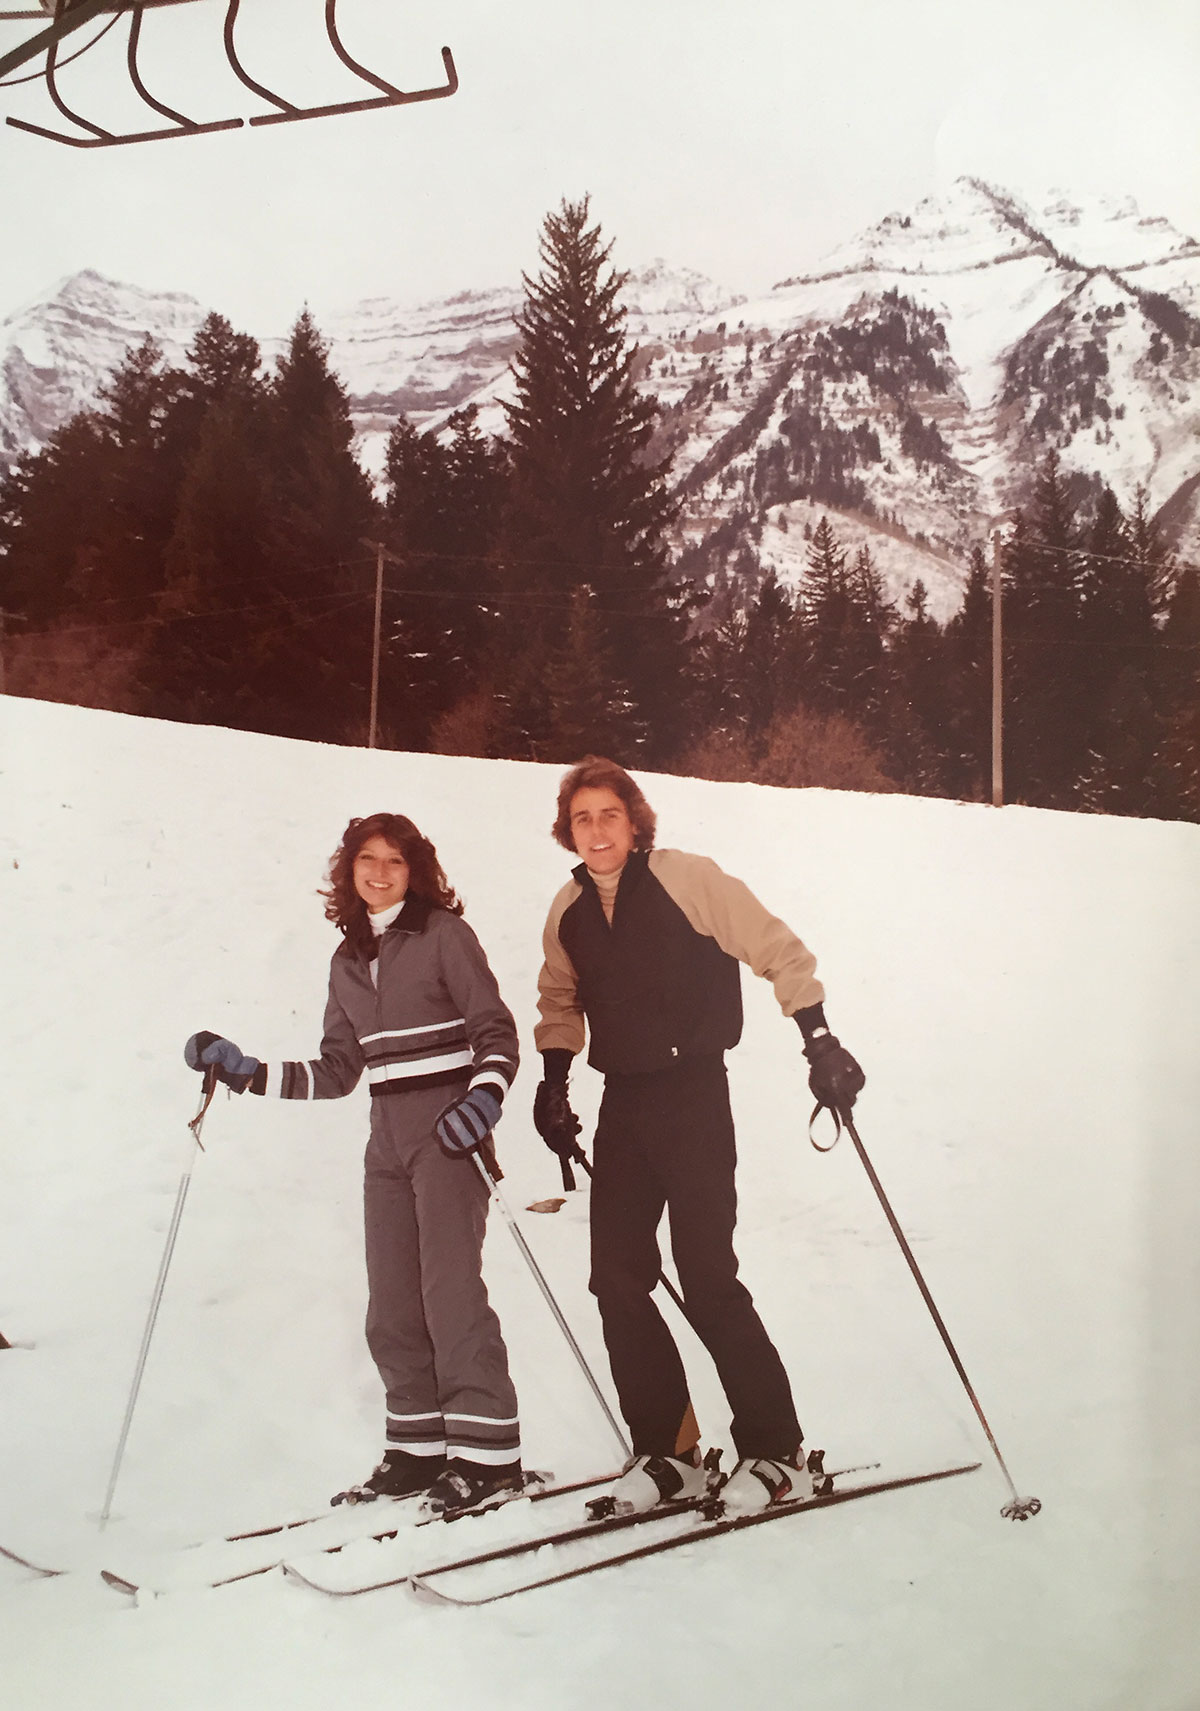 Jack Hadley Ski Instructor